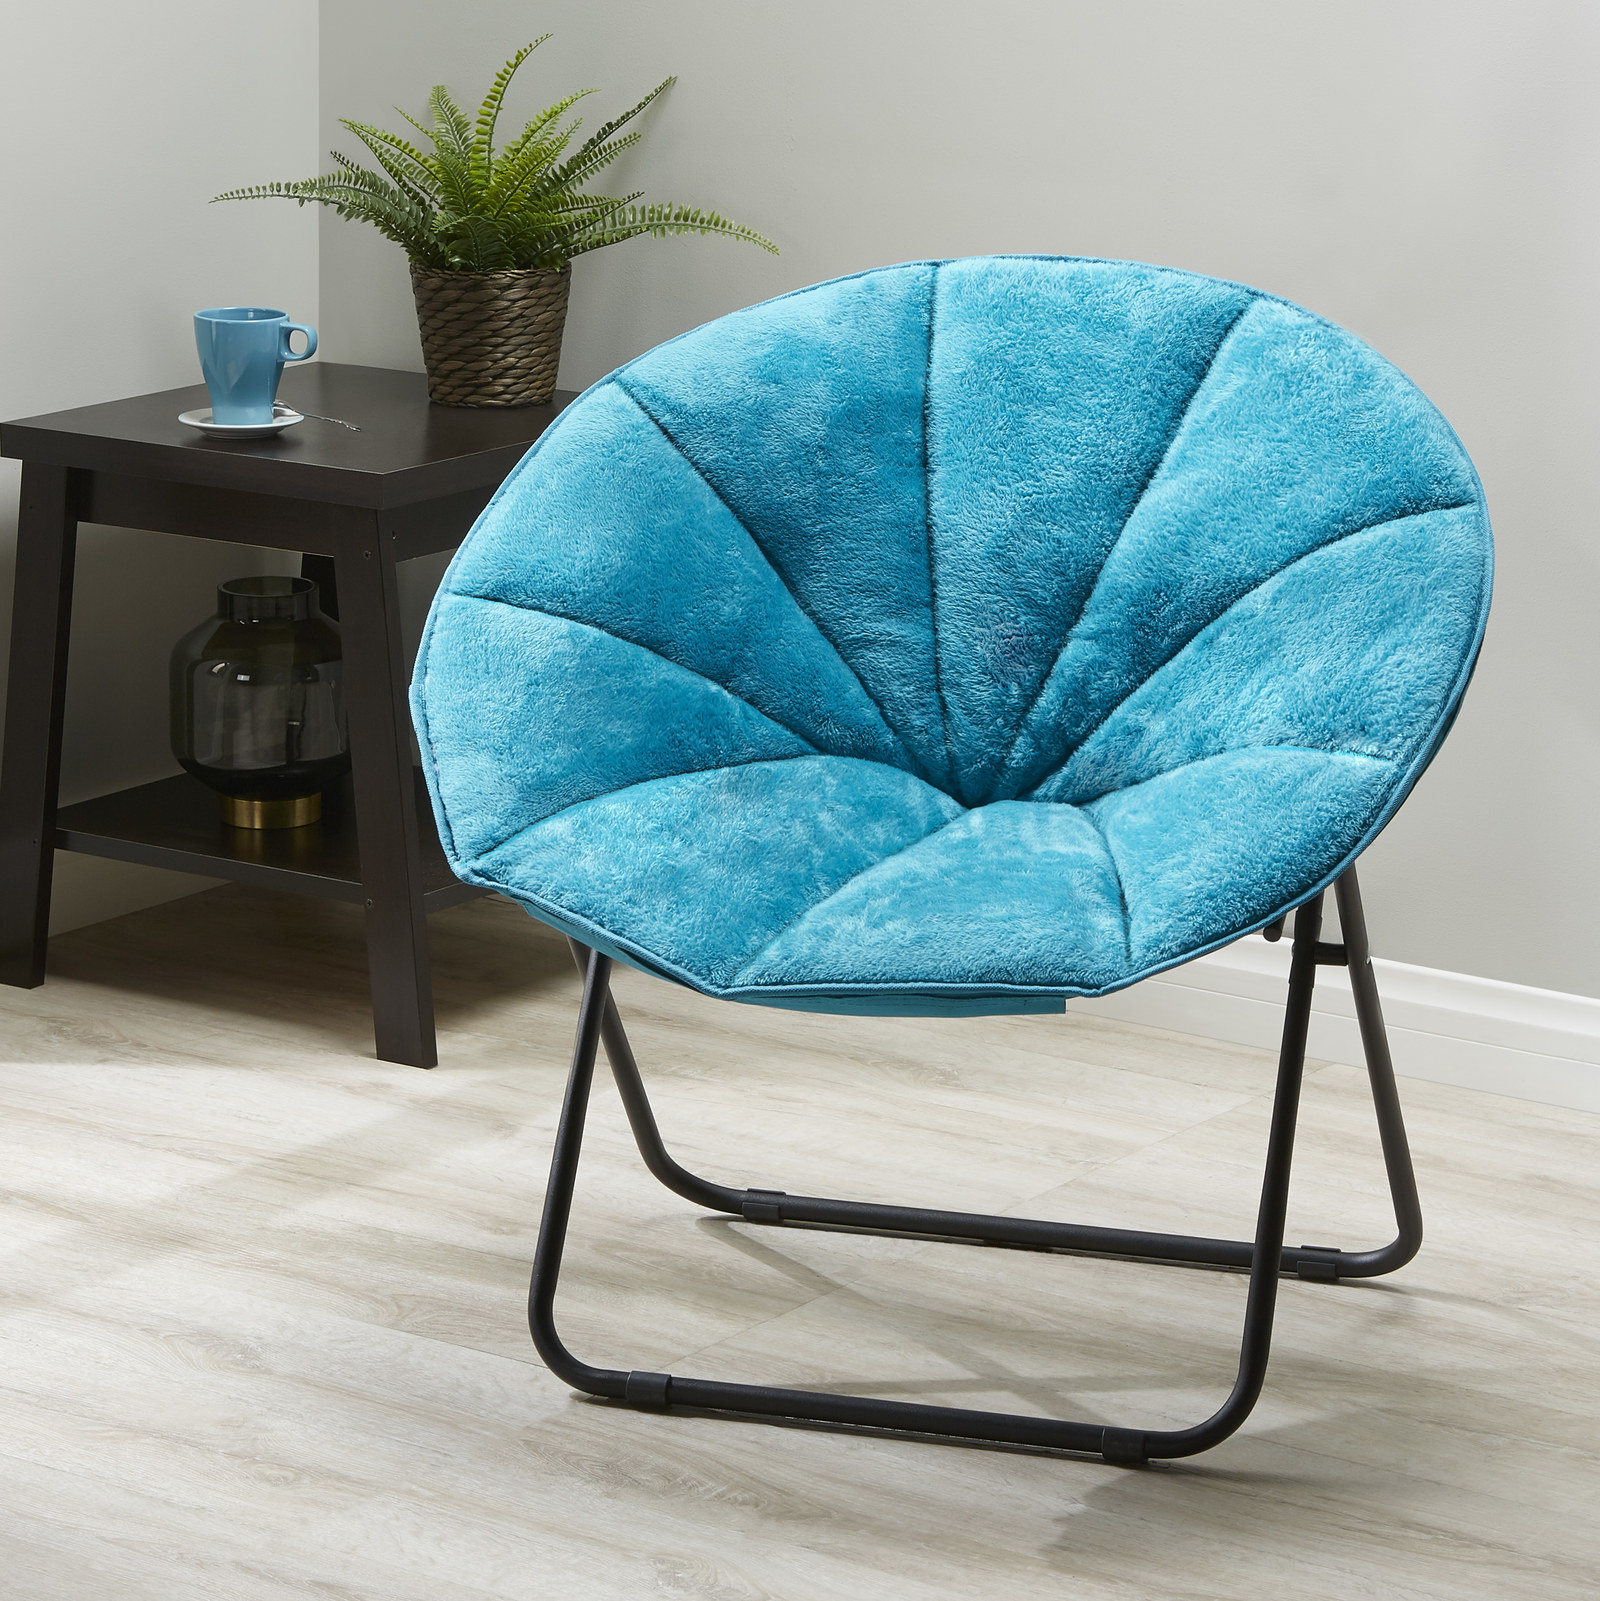 """Promising review: """"Purchased this chair for my son's dorm. Works great; it's comfortable and nice that it can fold up if needed to be set aside. Good price too!"""" —AEnglishPrice: $29 (available in three colors)"""